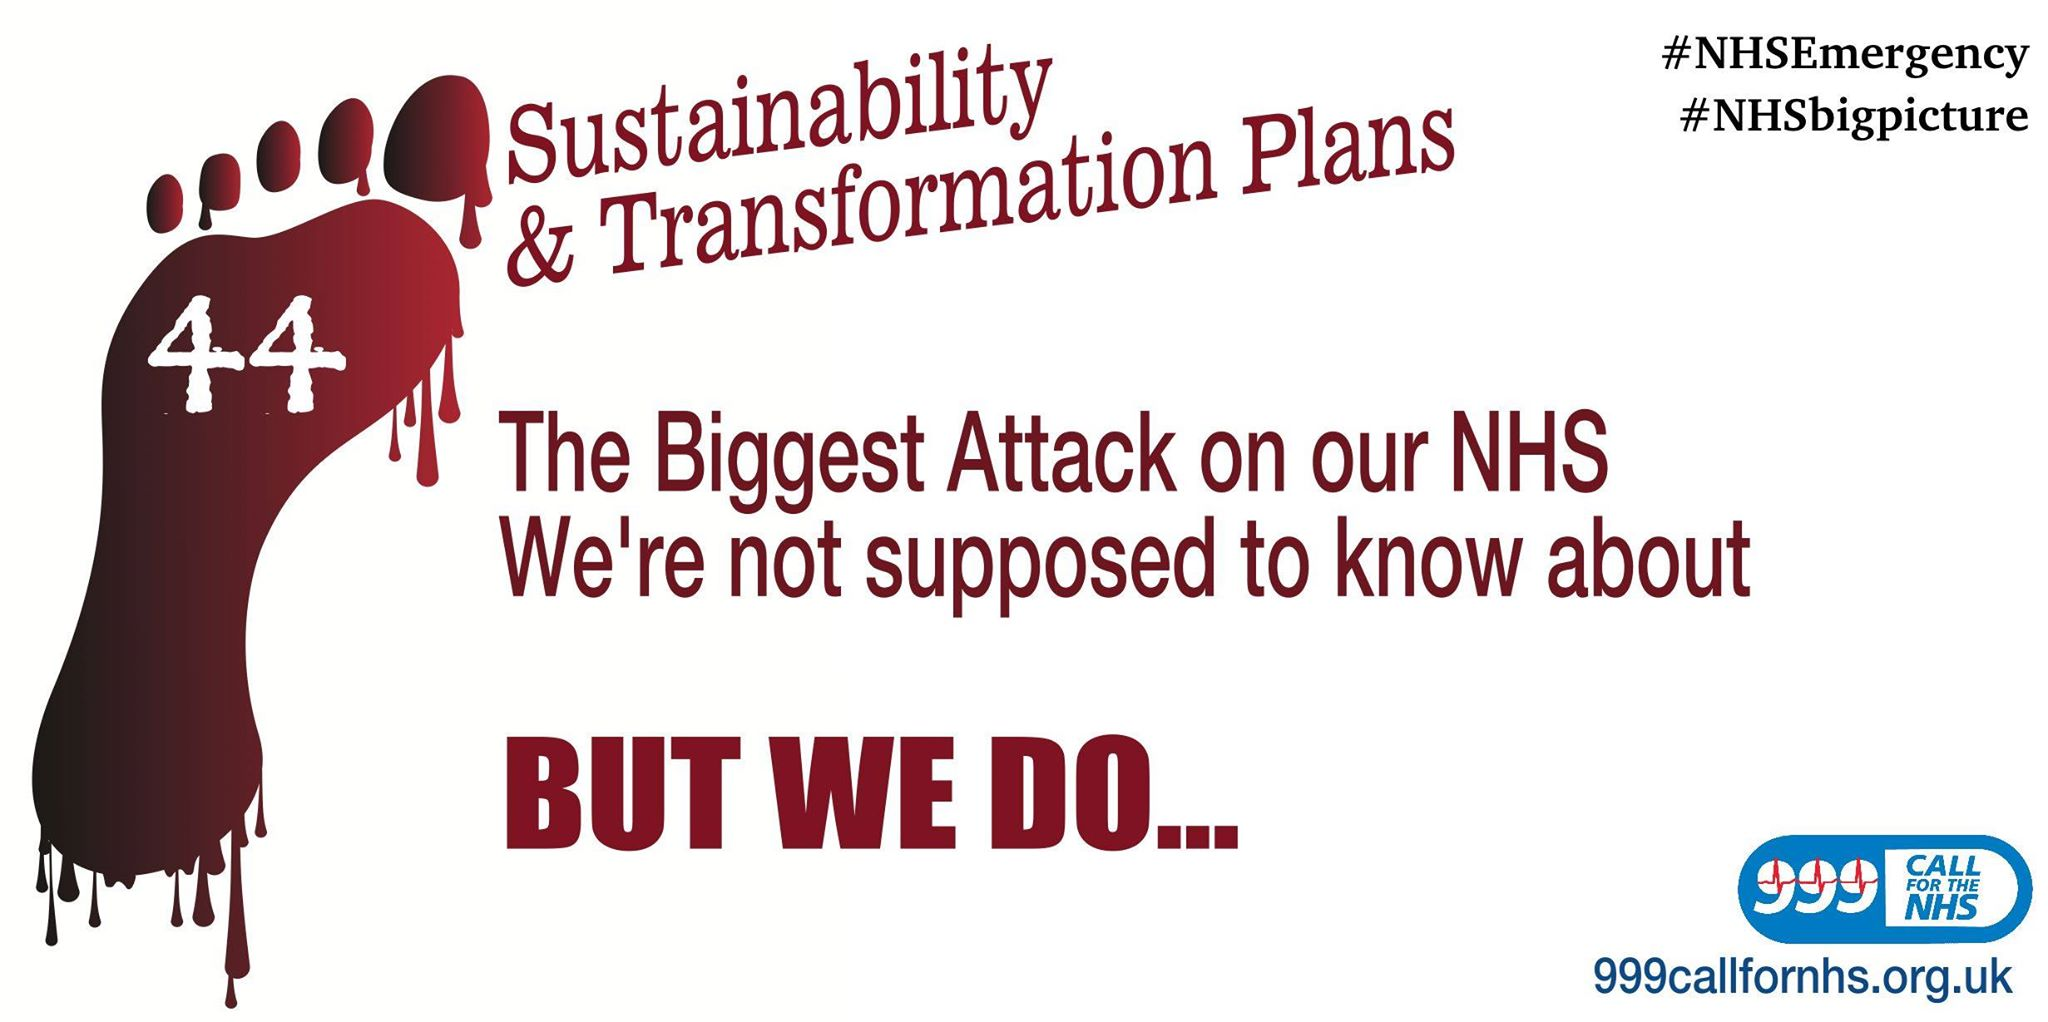 stp-biggest-attack-on-nhs-were-not-supposed-to-know-about-but-we-do